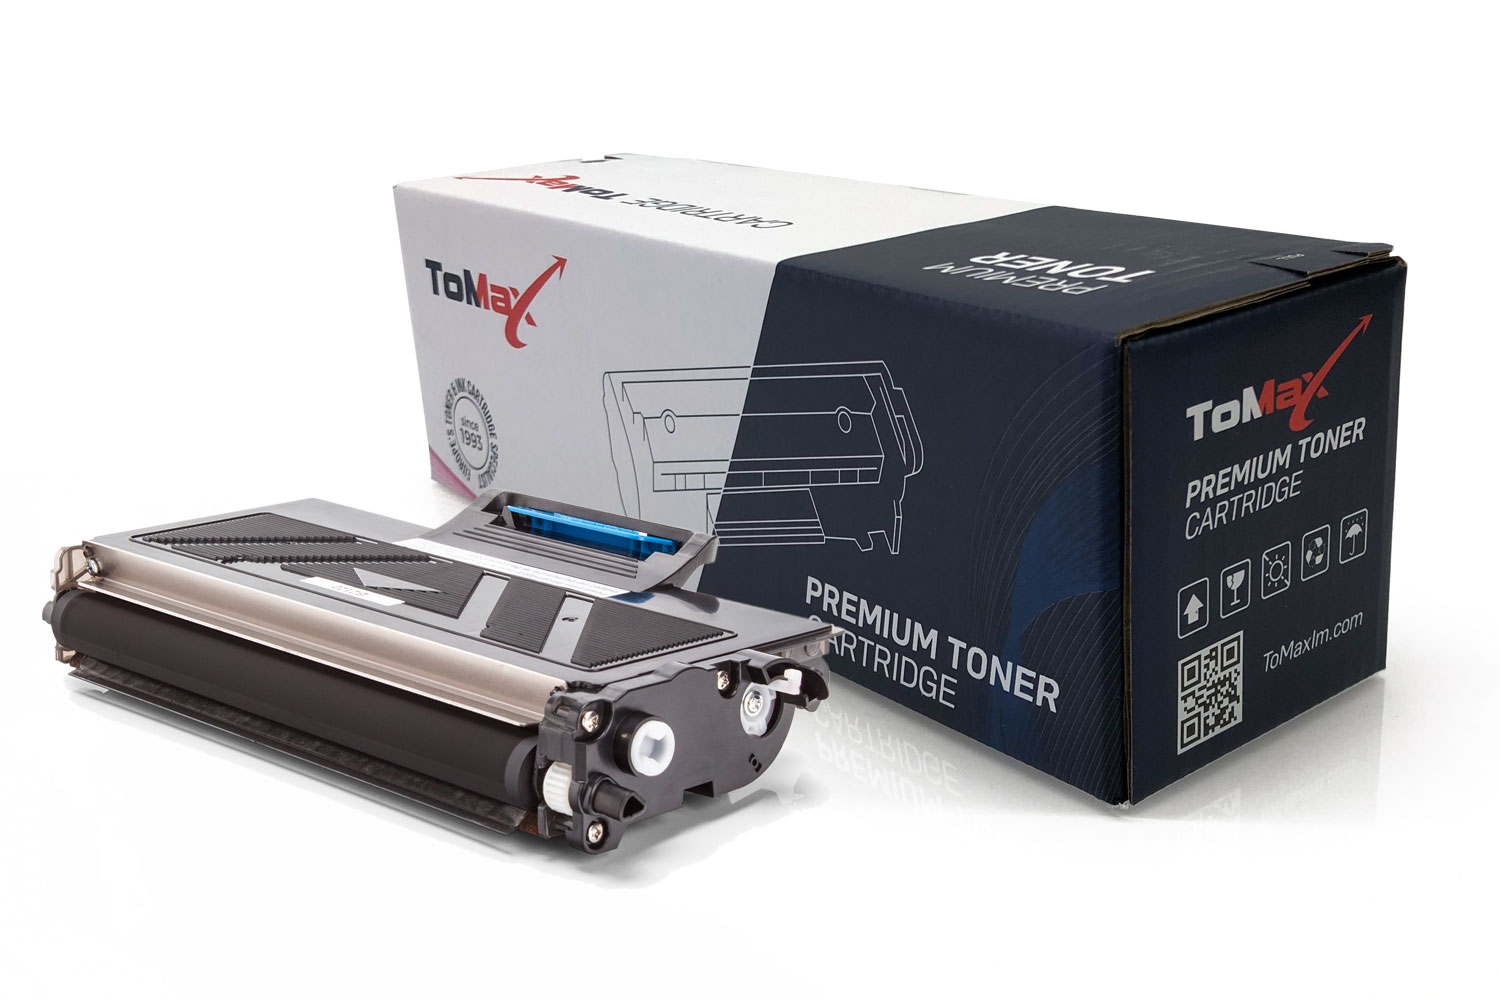 ToMax Premium Toner Cartridge replaces HP Q2612A / 12A Black